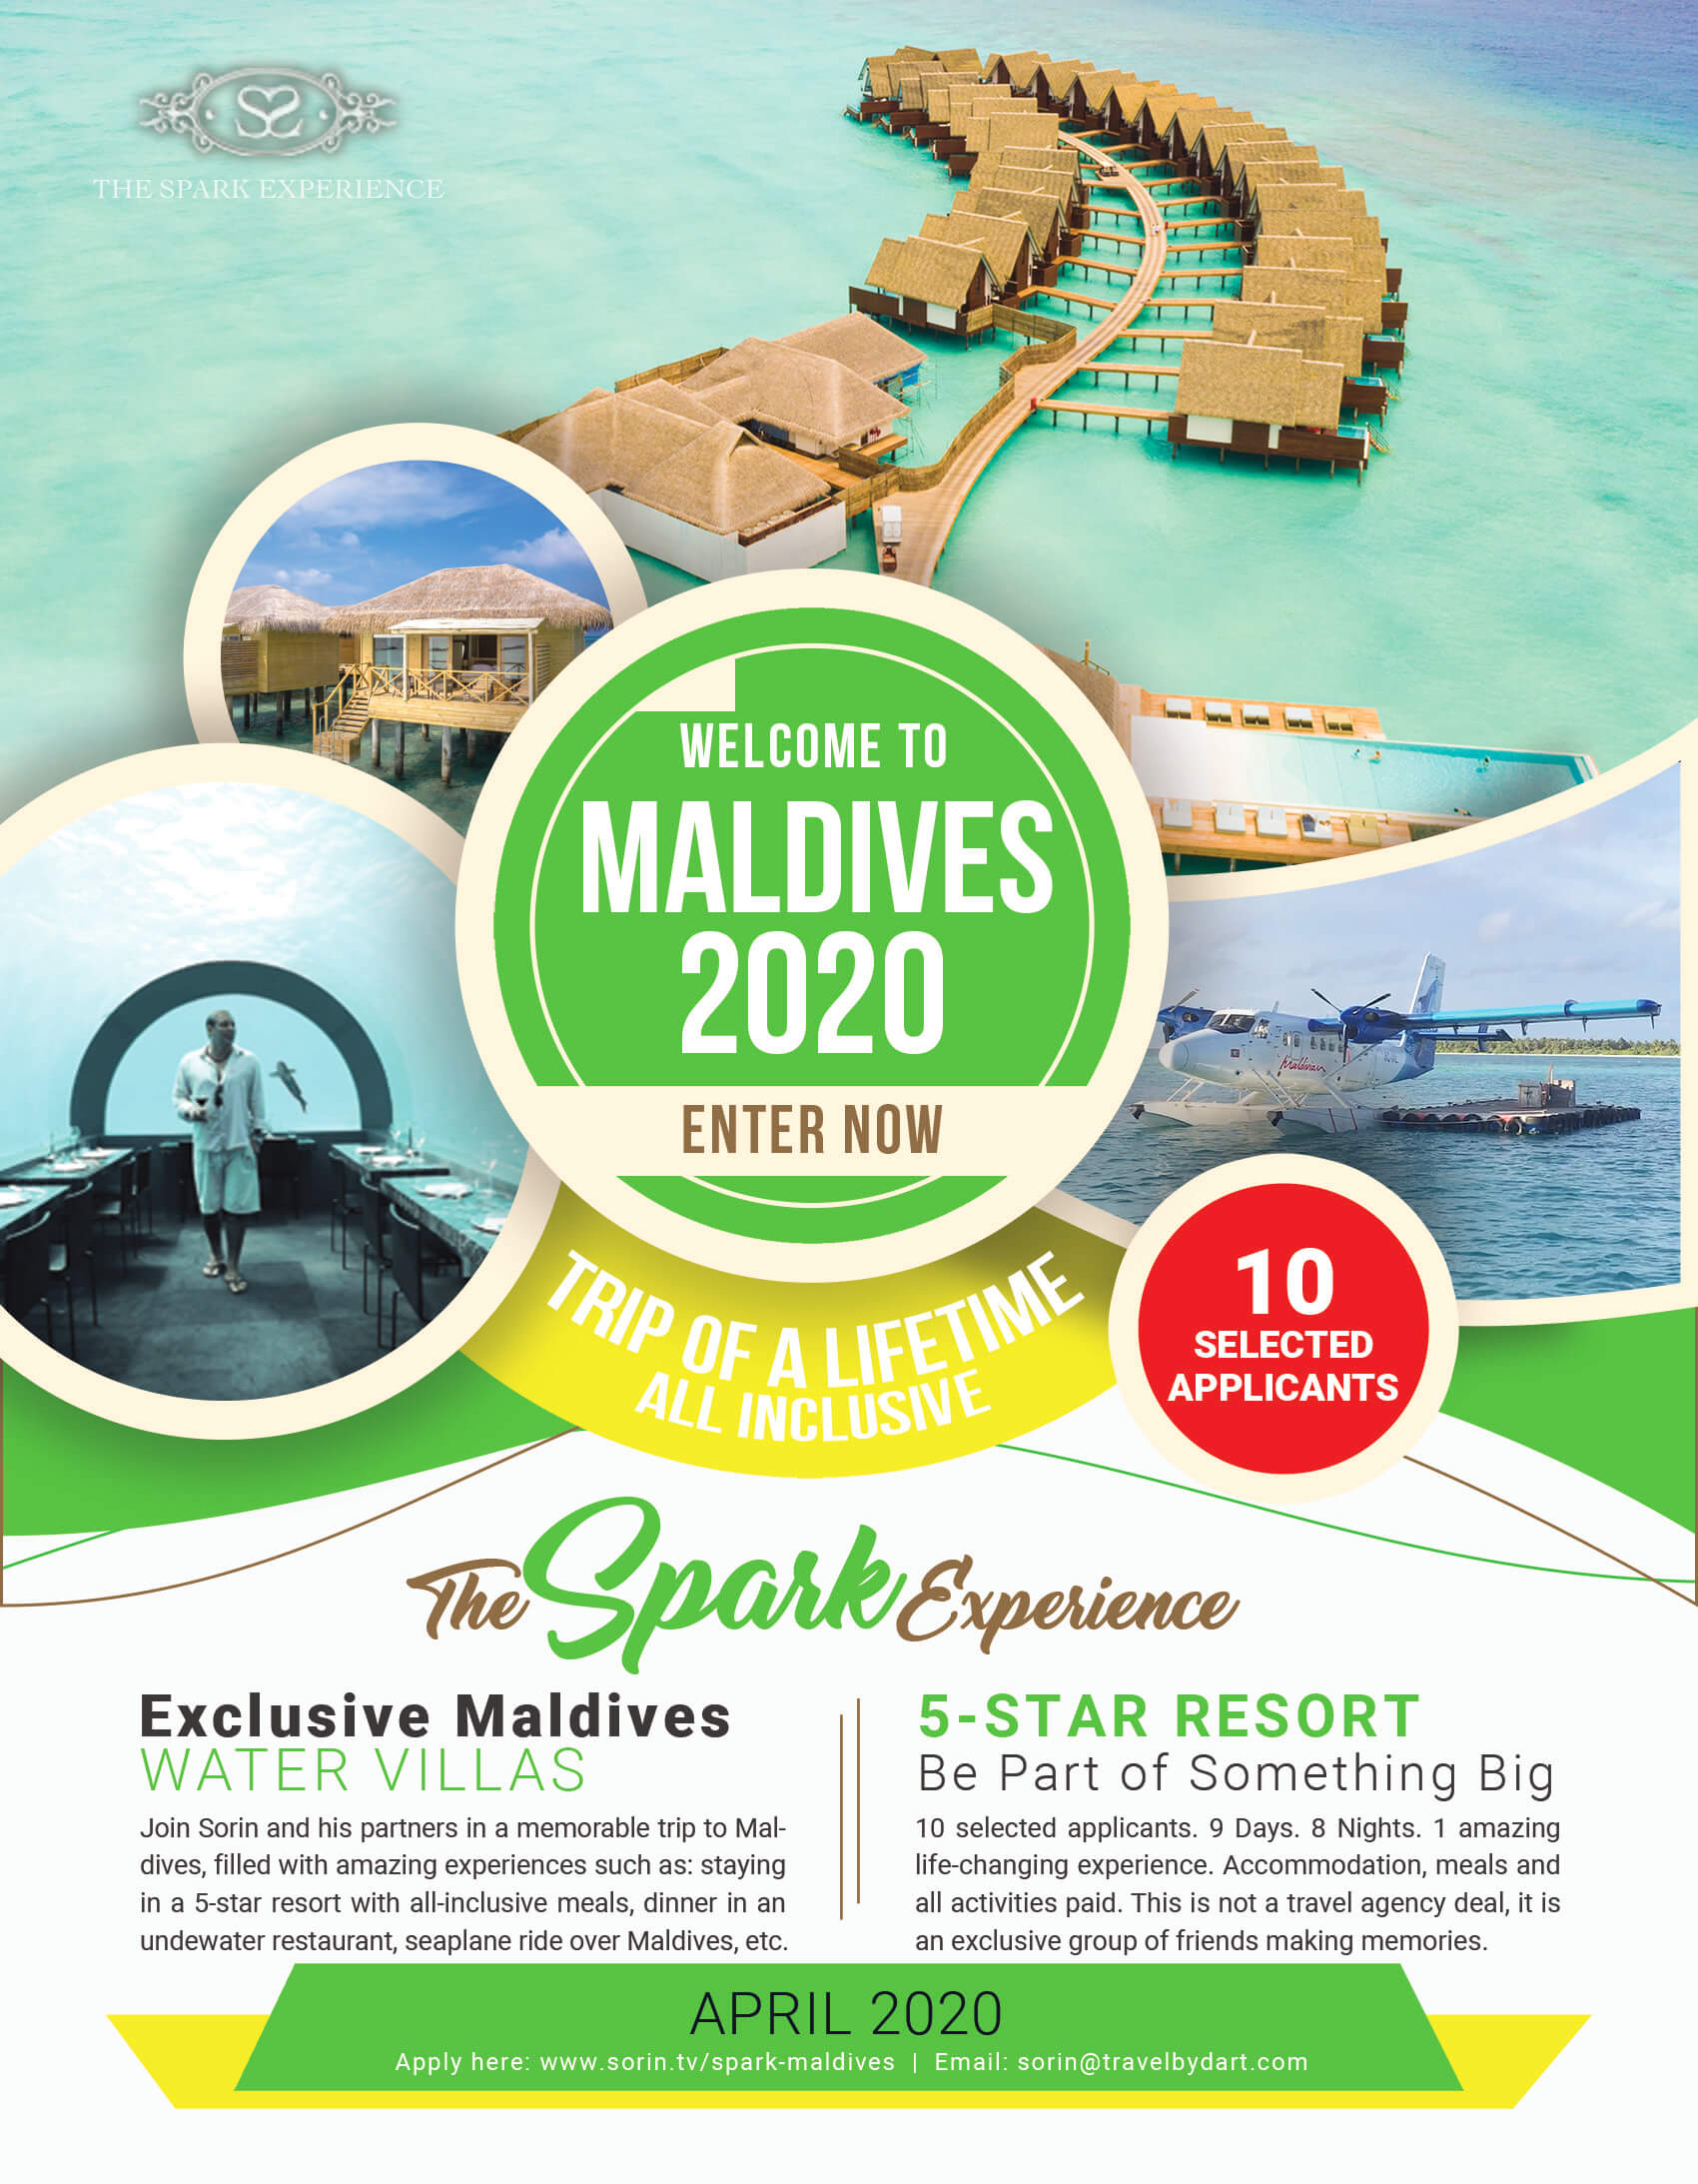 maldives travel packages 2020